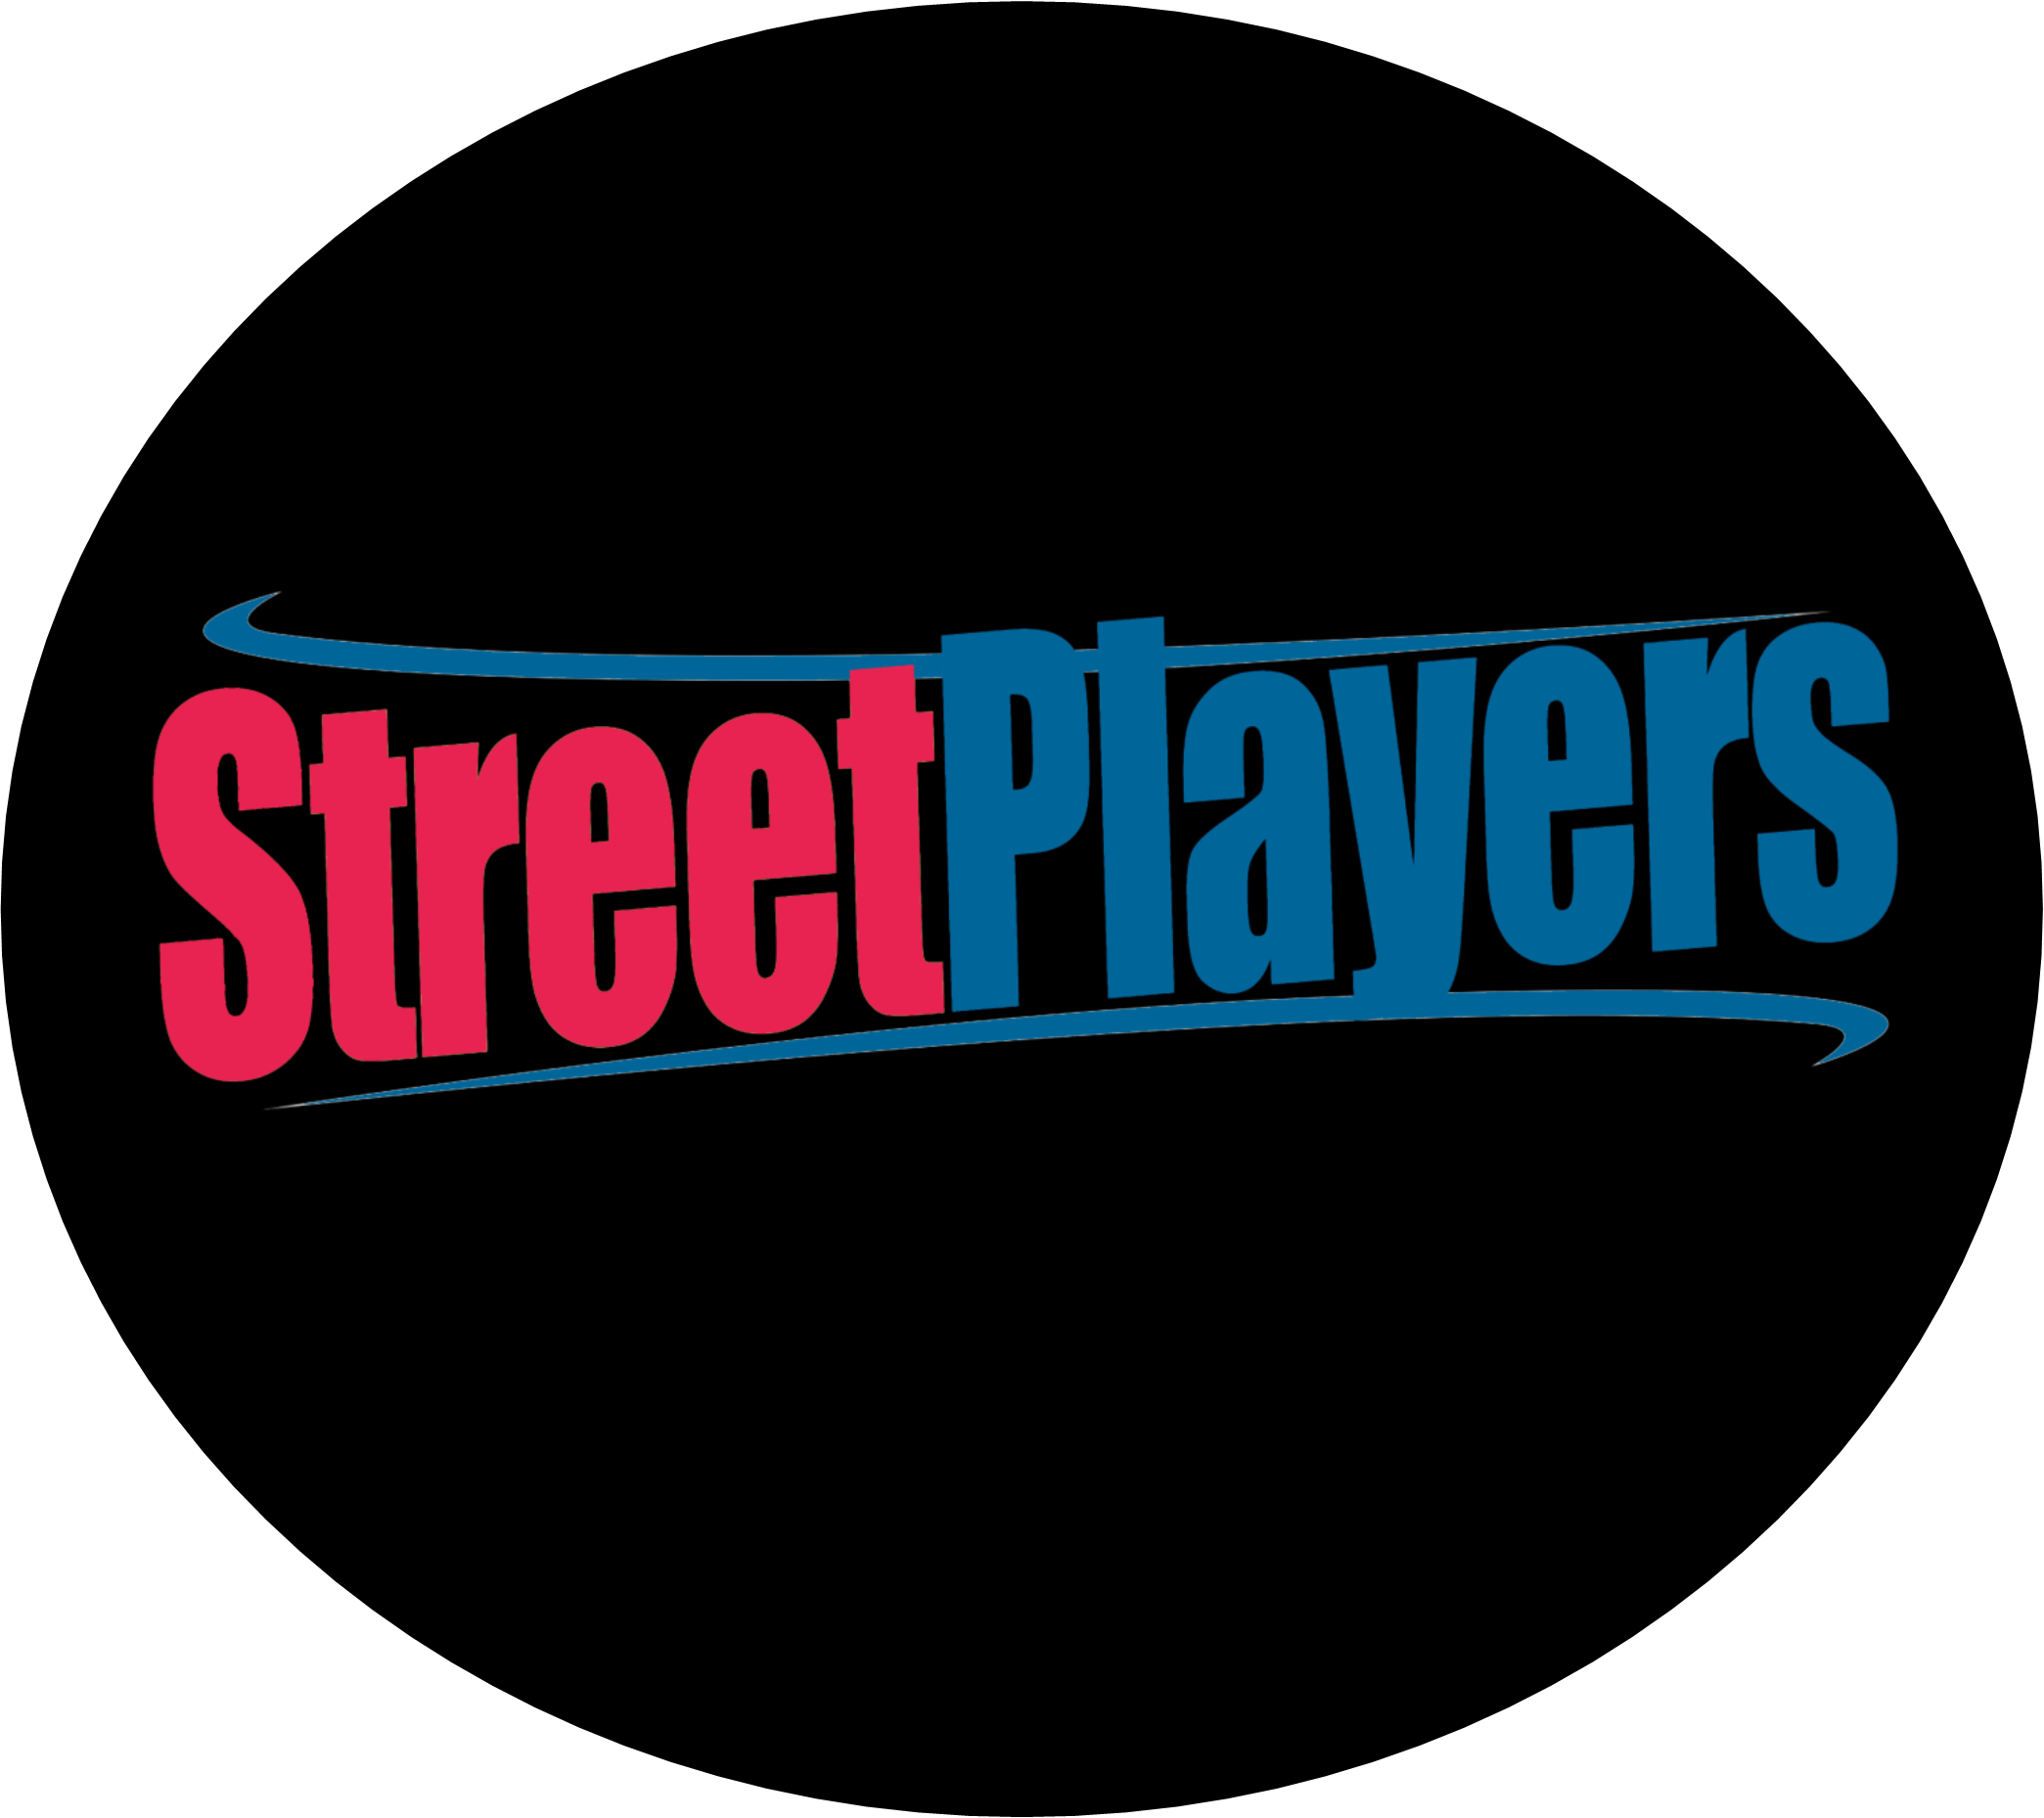 Street-Players_Logo_Sponsoren und Partner 2019